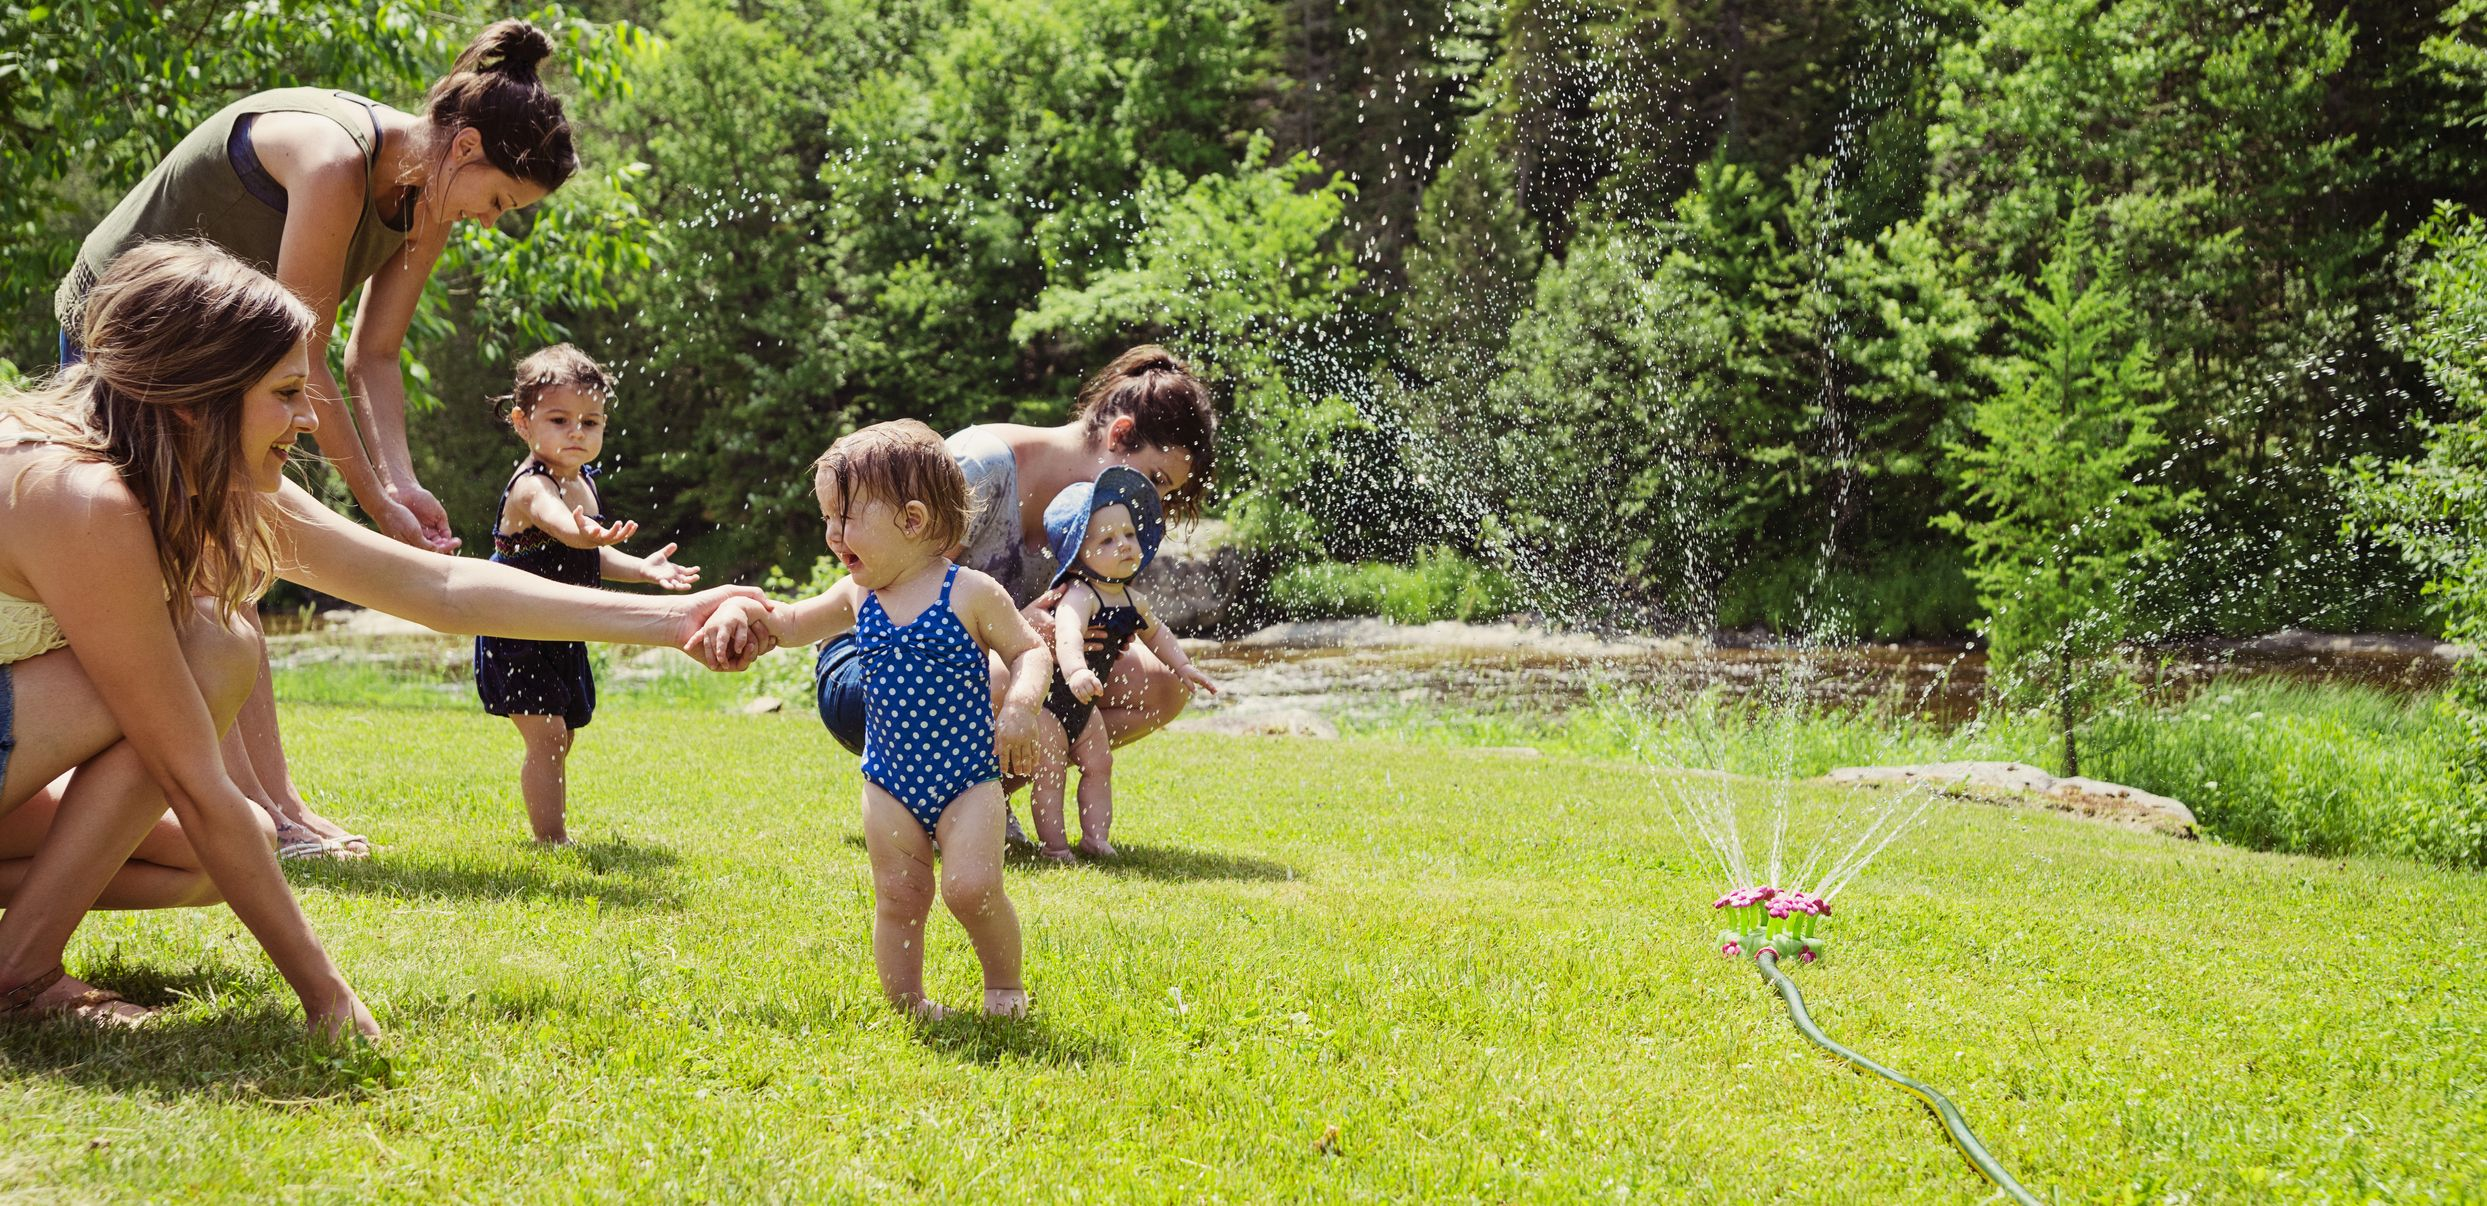 Mothers and children playing in the sprinkler.